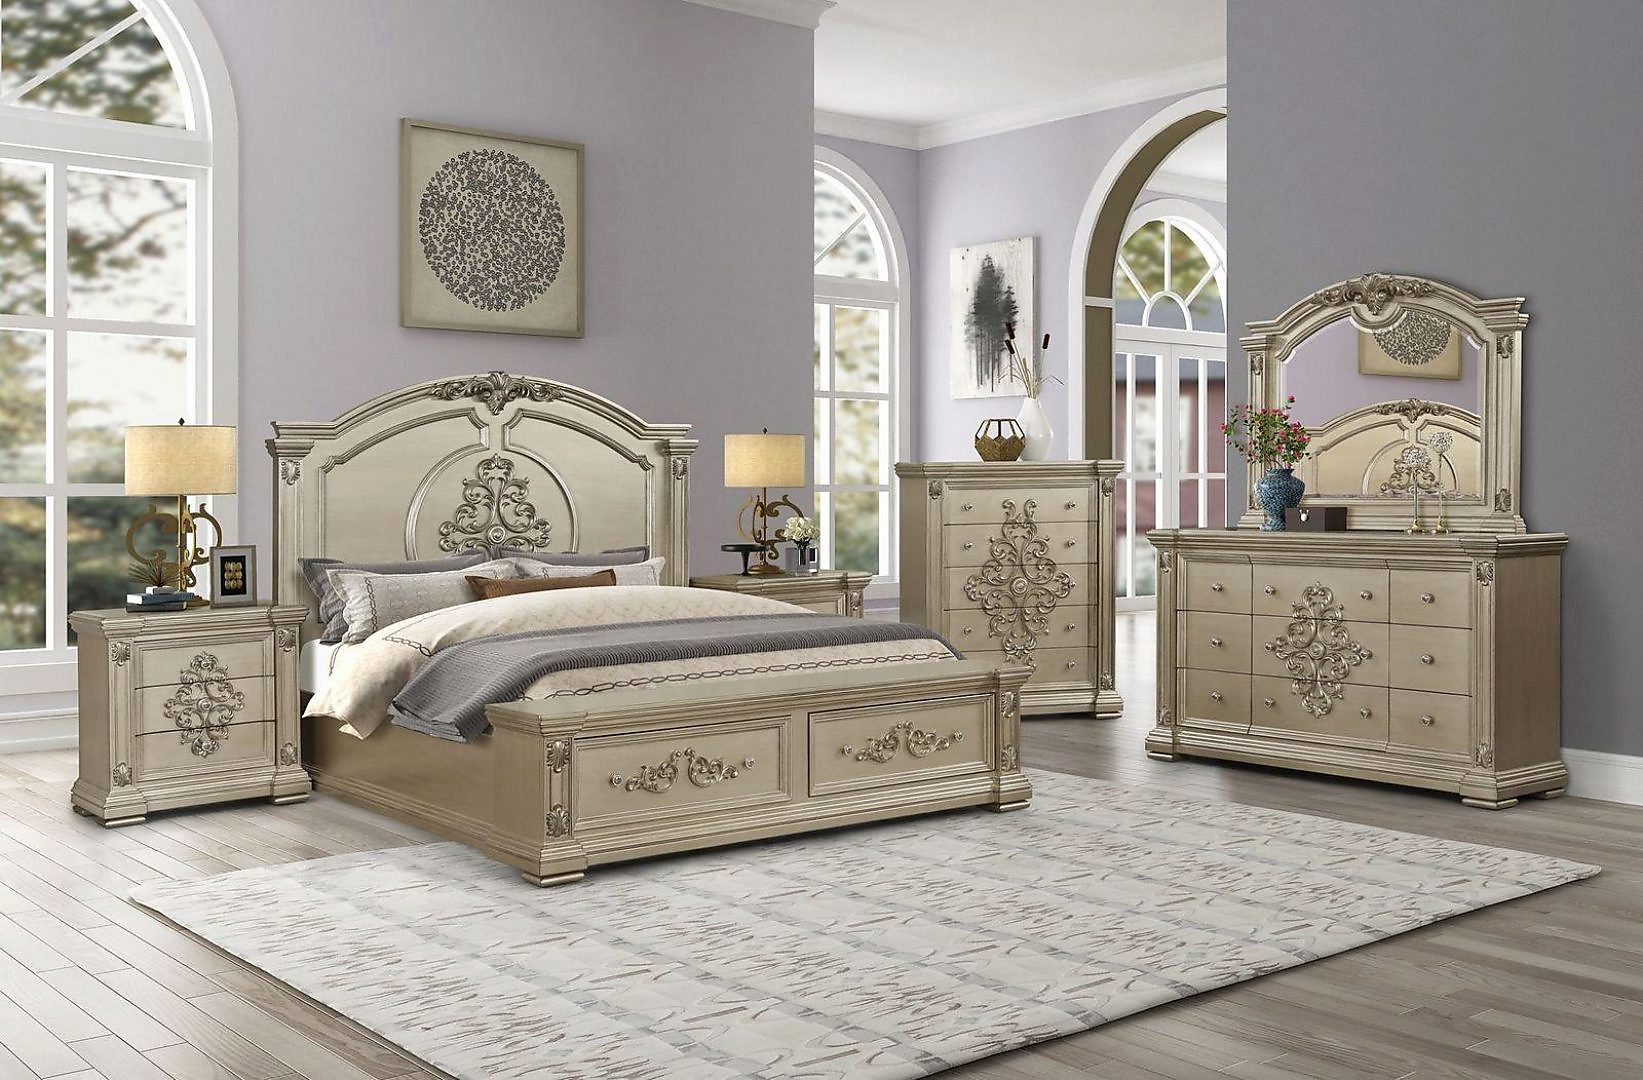 Transitional Beige  and Wood King Panel Bedroom Set 6 pcs Alicia by Cosmos Furniture